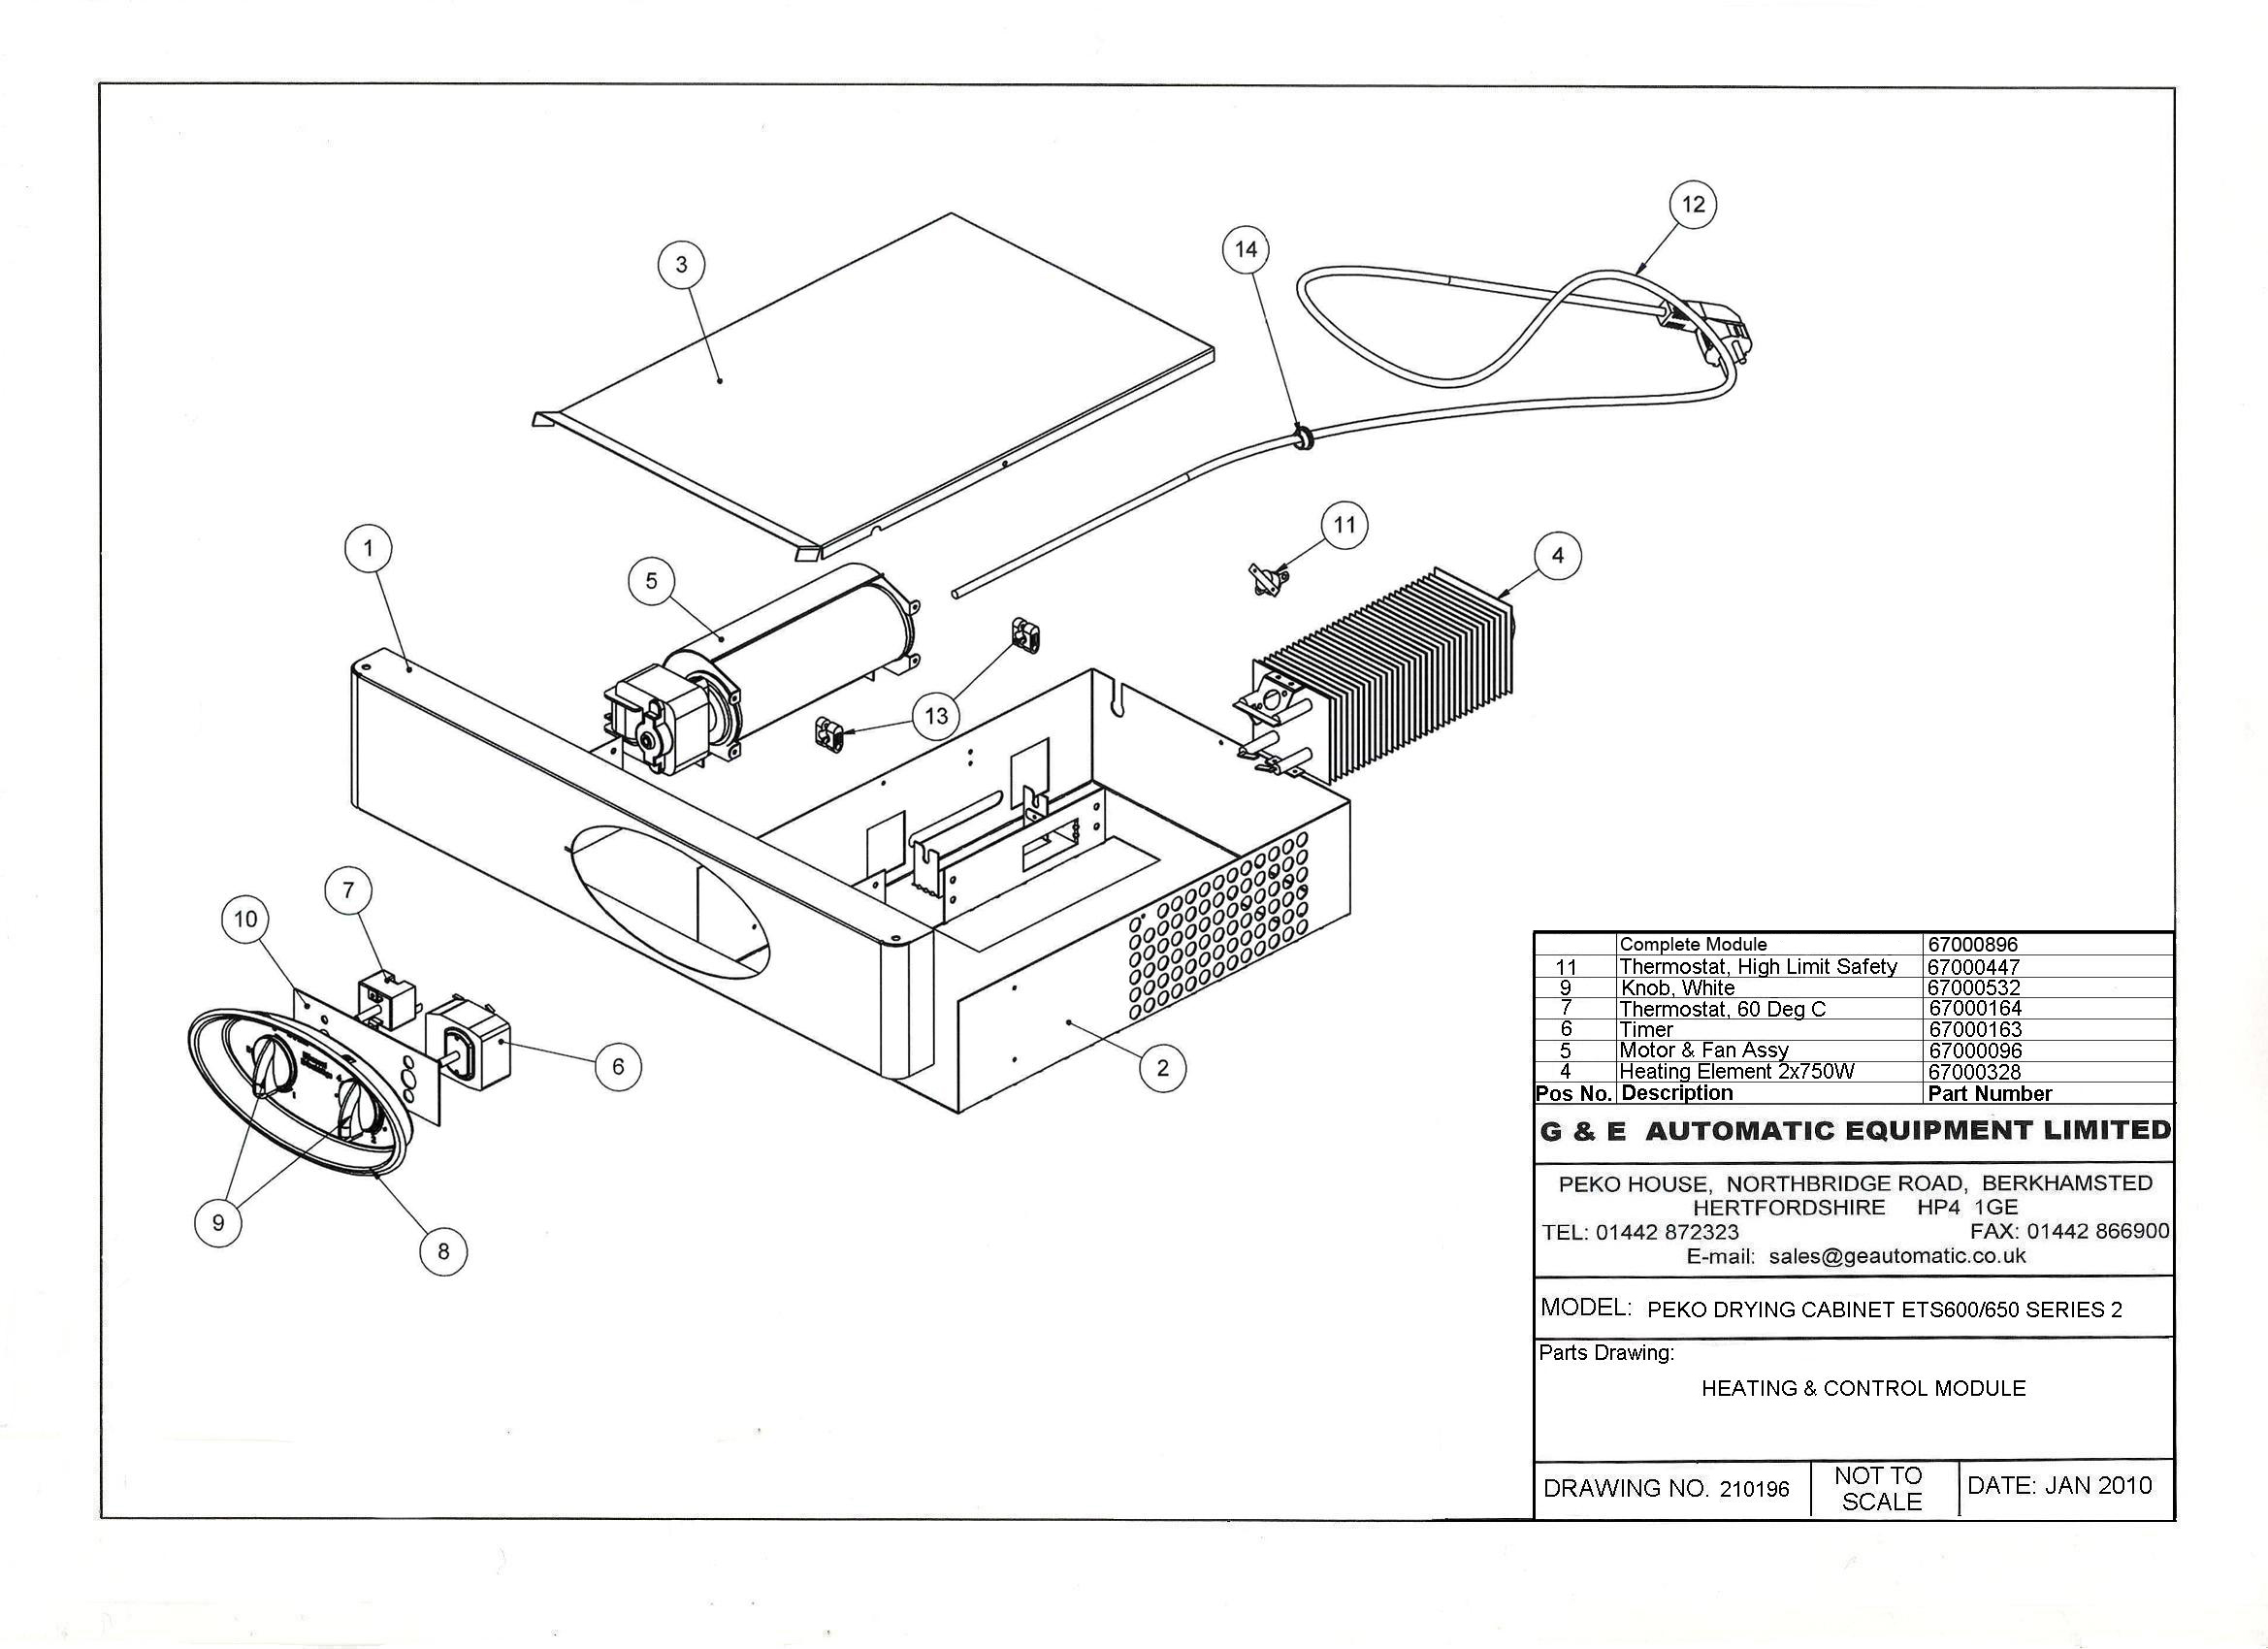 Spare Parts Peko Drying Cabinets Gear Dryer Wiring Diagram Ets 600 650 Series 2 Heating And Control Module